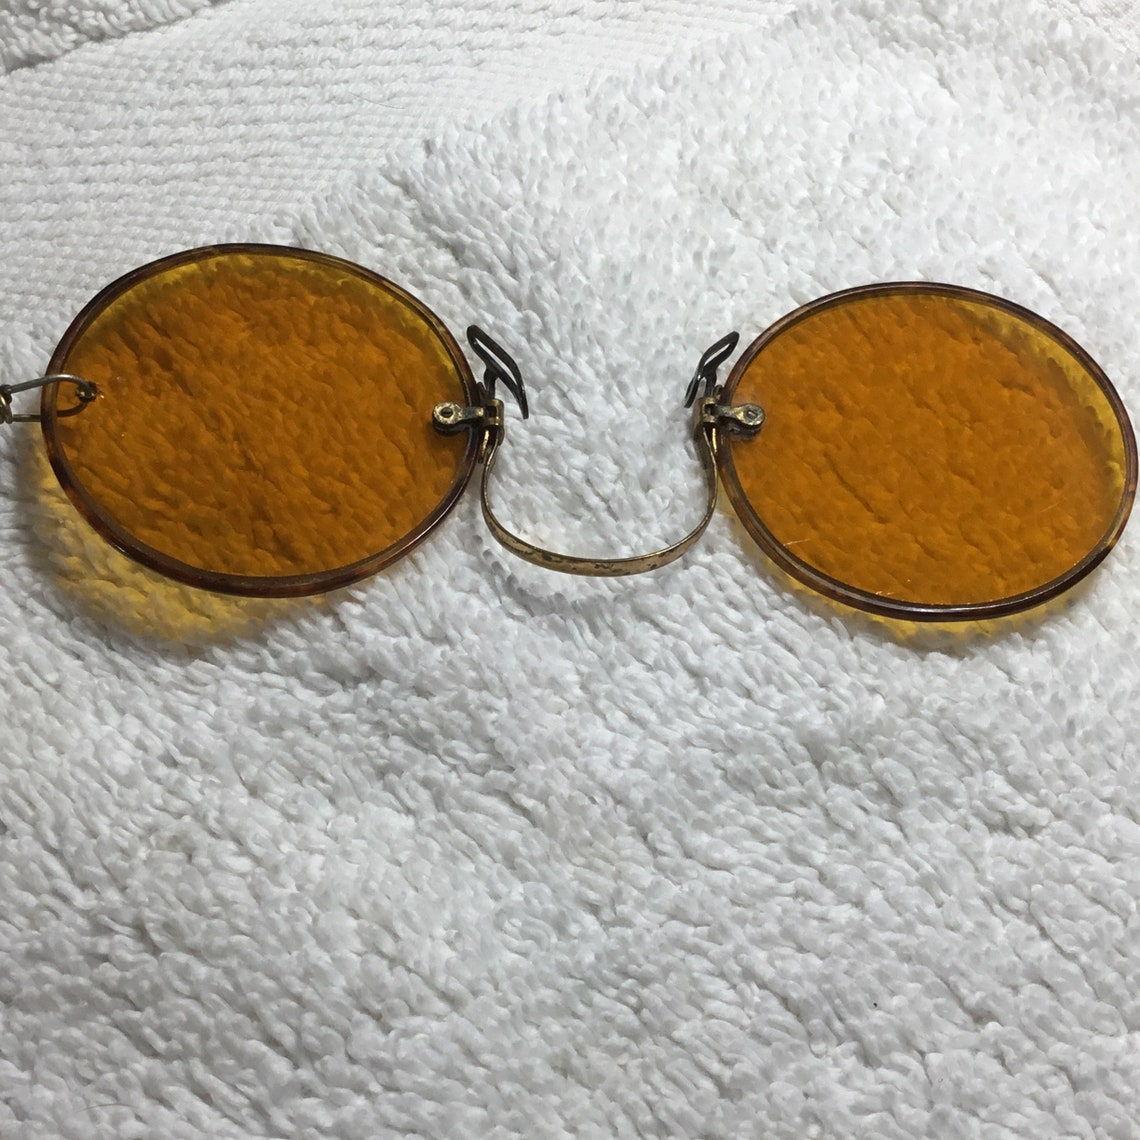 1880's Pince Nez Round Amber Lenses Pinch On Nose Sunglasses, 1903-10 Pin On Ketcham McDougall Automatic Retractable Chain Holder And Case ~